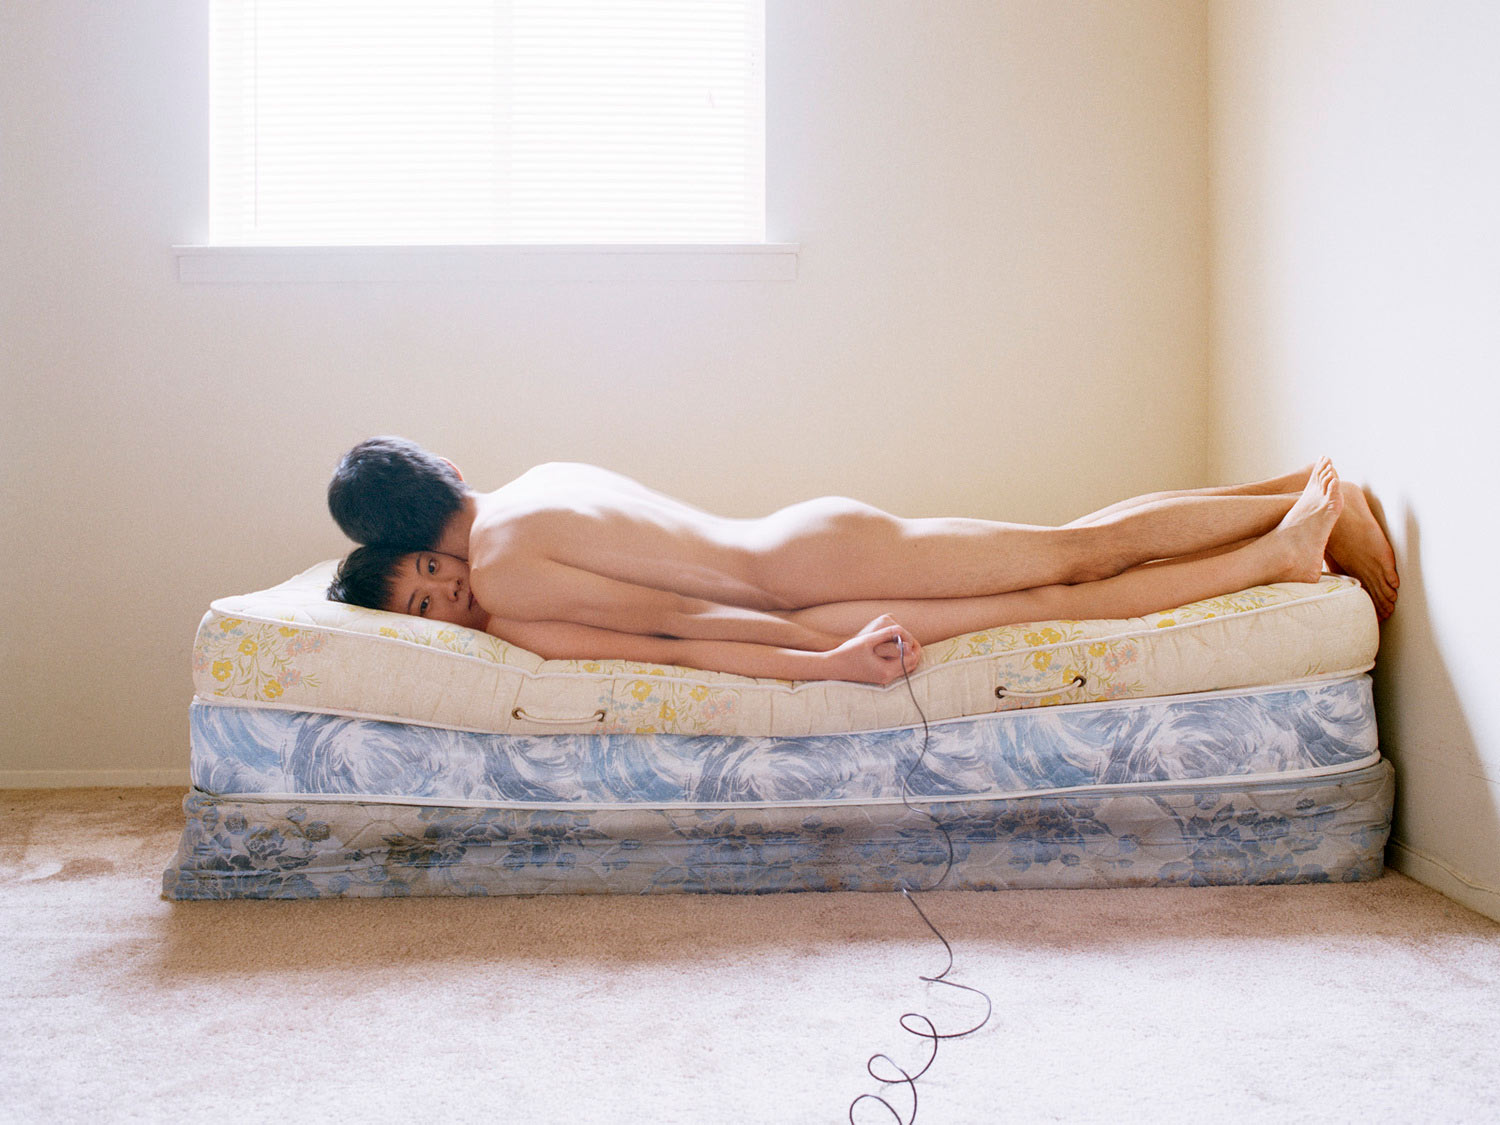 Pixy Liao, How to build a relationship with layered meanings , 2008. From the series, Experimental Relationship © Pixy Liao. Courtesy of the artist